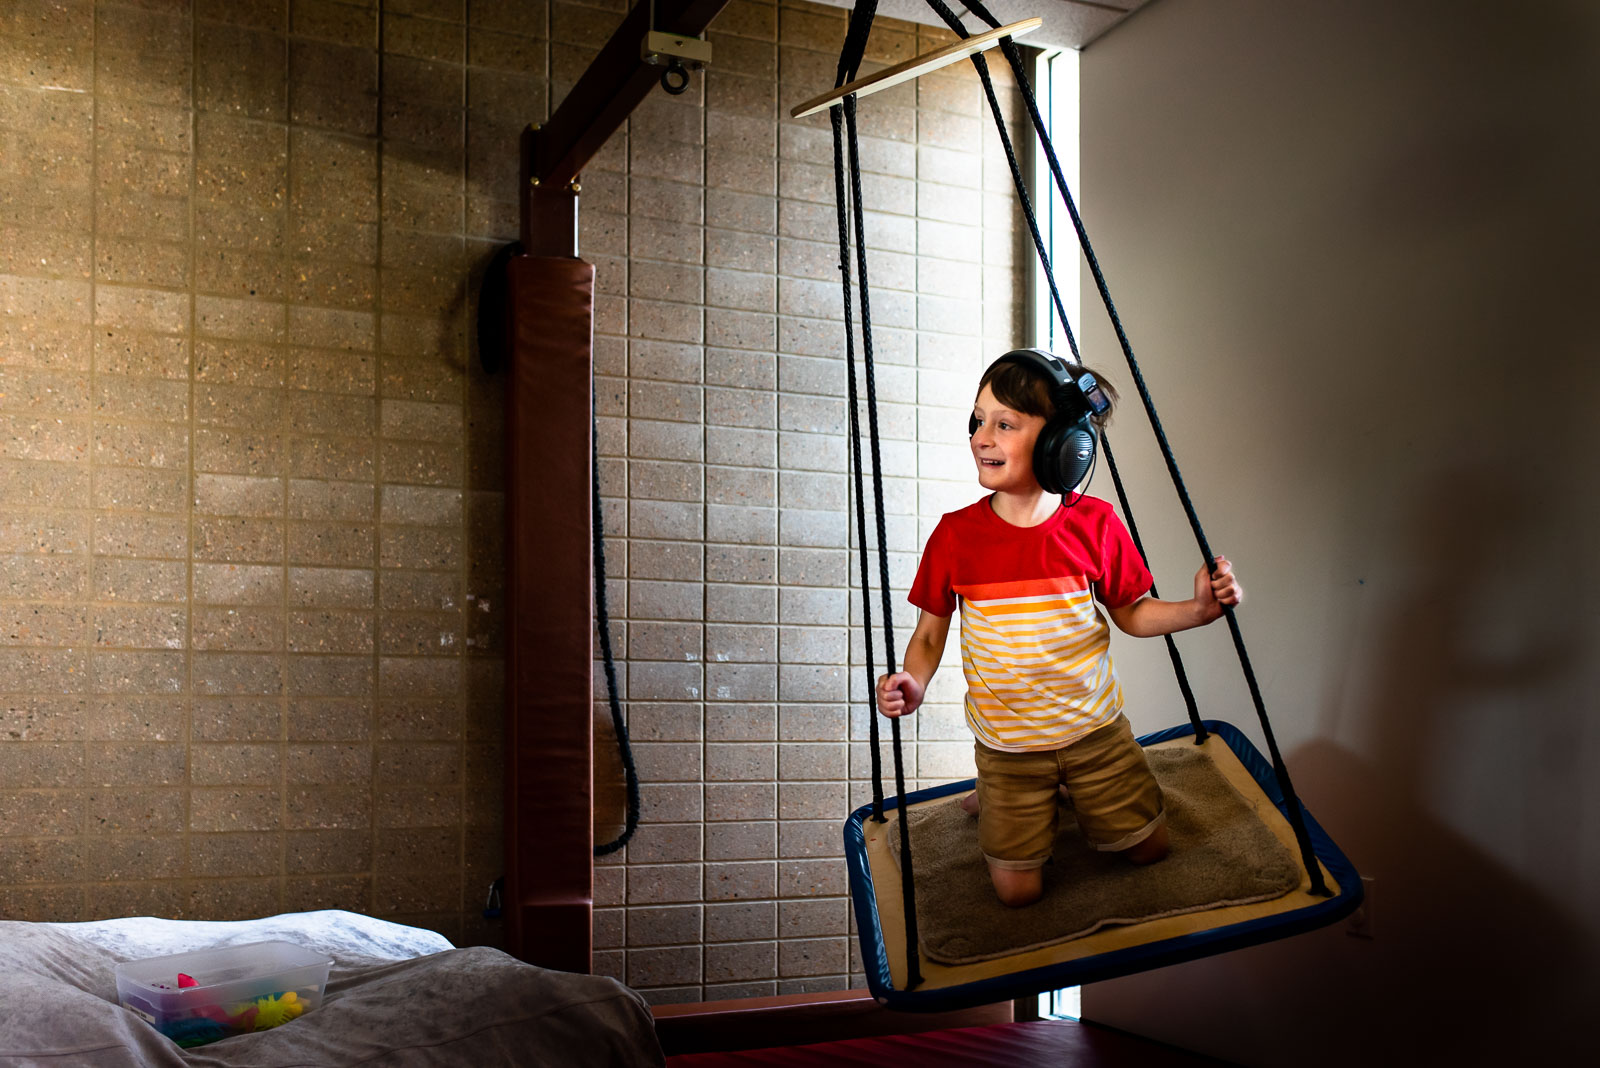 Photographing struggle - autistic child at therapy